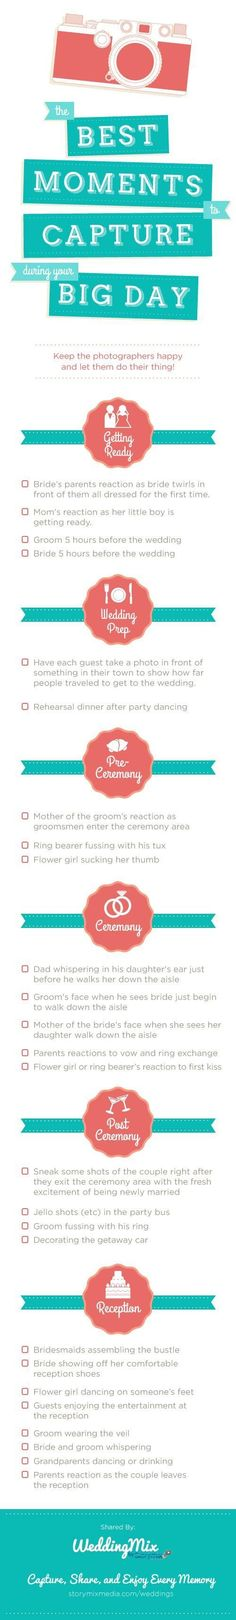 It's a great thing to come across wedding planning tipspackaged so nicely. With that in mind, we're sharing some pretty resourceful tools below to reference during the planning process. From advice on how to addressinvitations down to a comprehensive bridal bouquet guide, these infographics will give you a push in the right direction. Take a […]